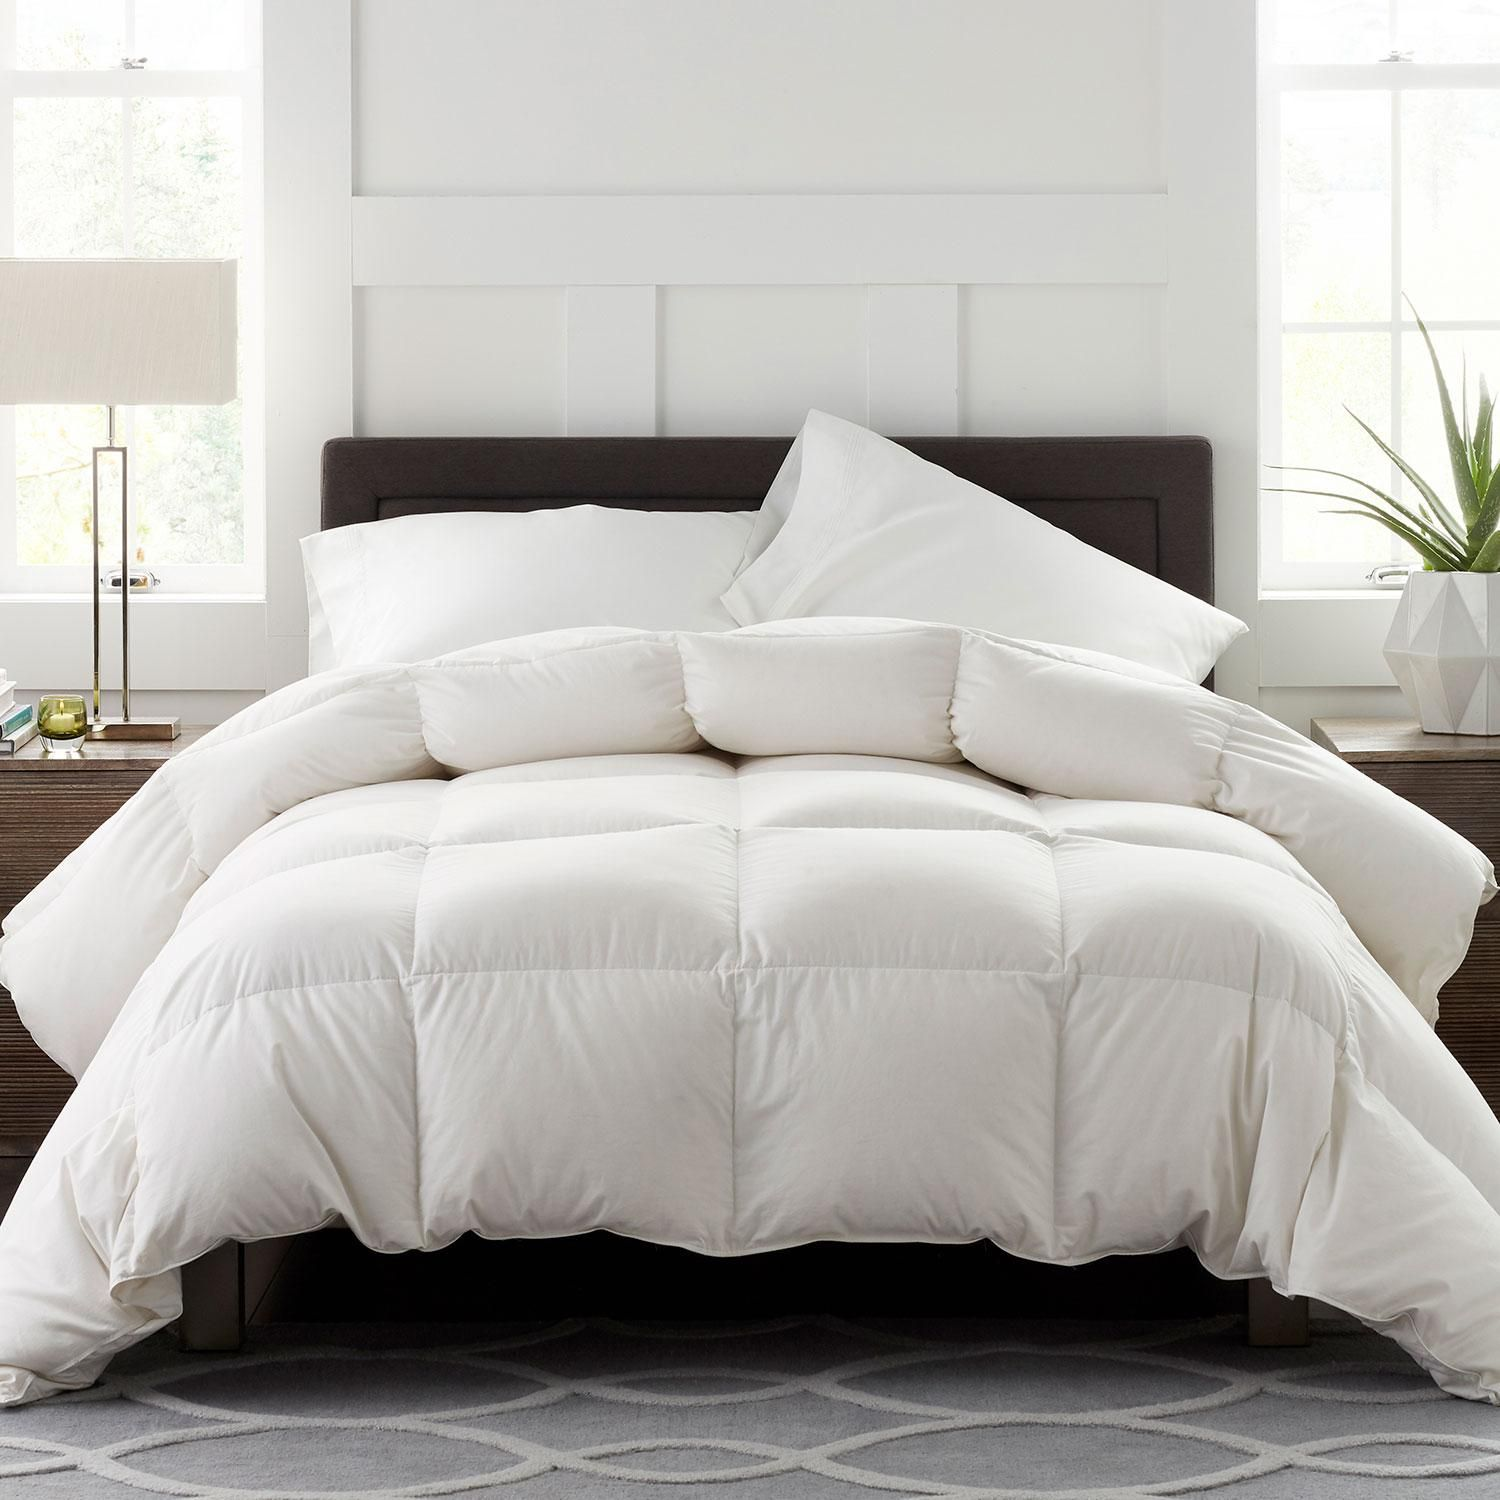 Legends Geneva Down Comforter Extra Warmth At The Company Store